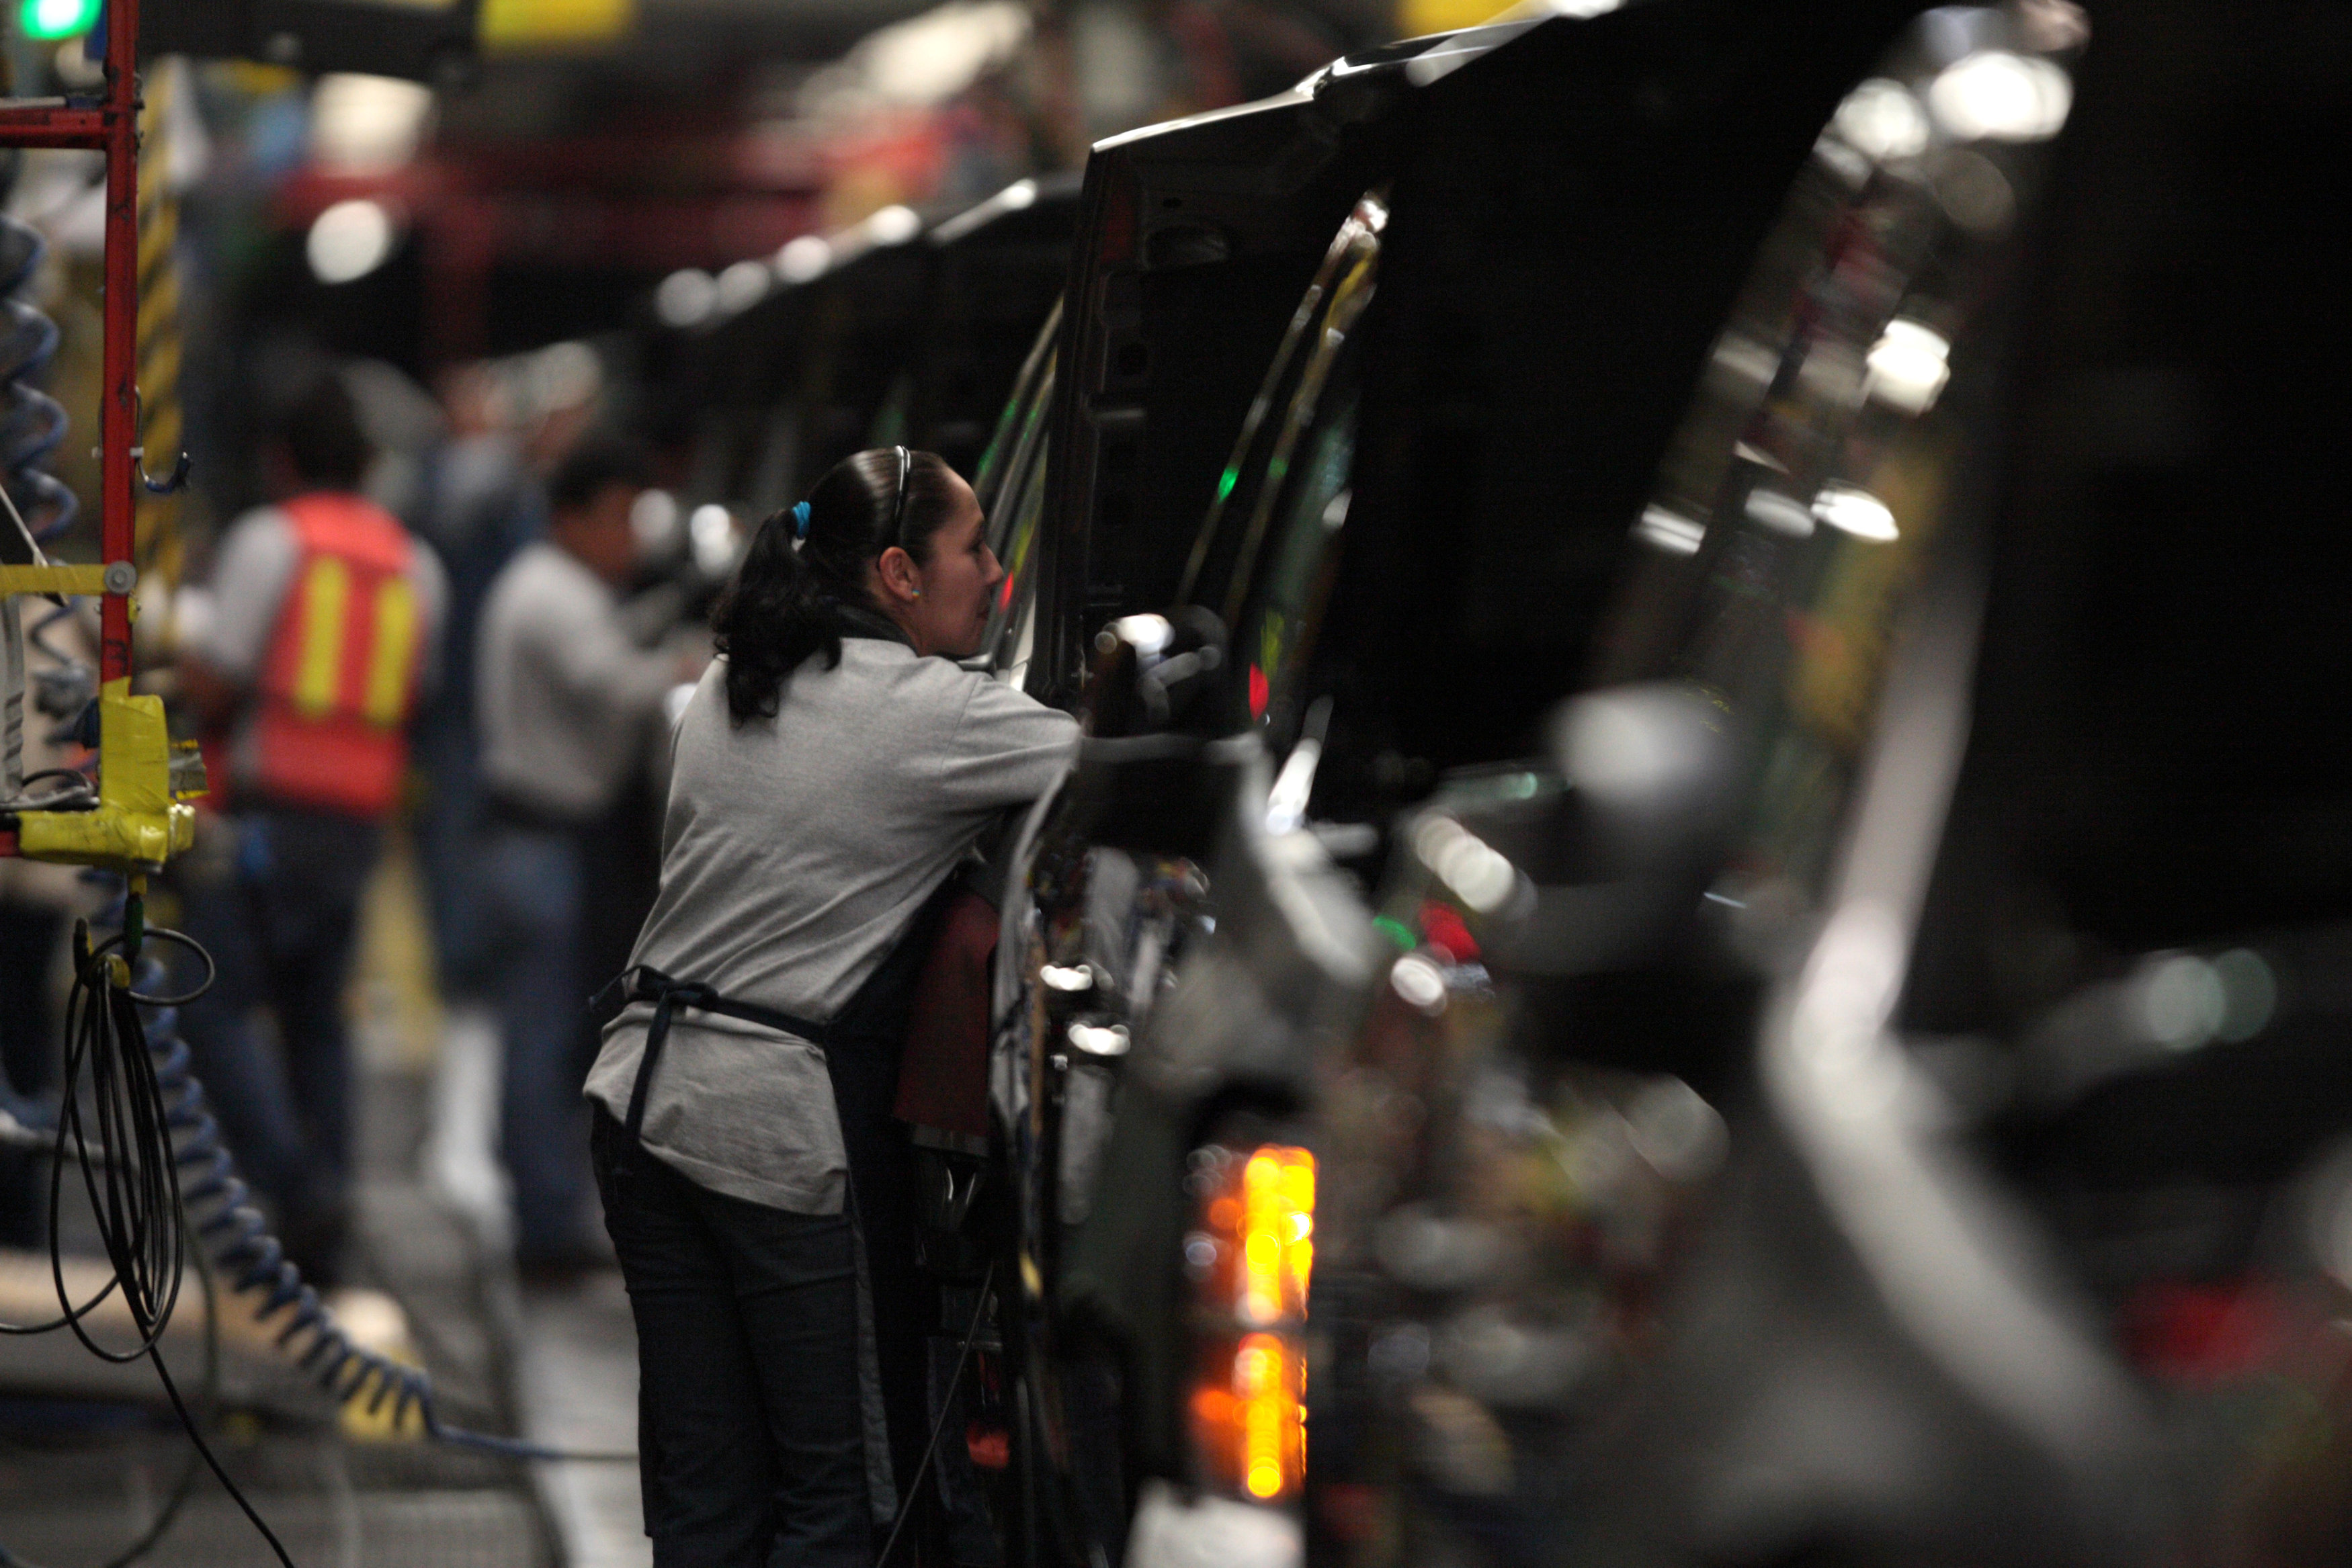 FILE PHOTO: Factory employees are seen working in the plant of General Motors in the city of Silao, in the state of Guanajuato, Mexico in this November 25, 2008 file photo. REUTERS/Henry Romero/Files